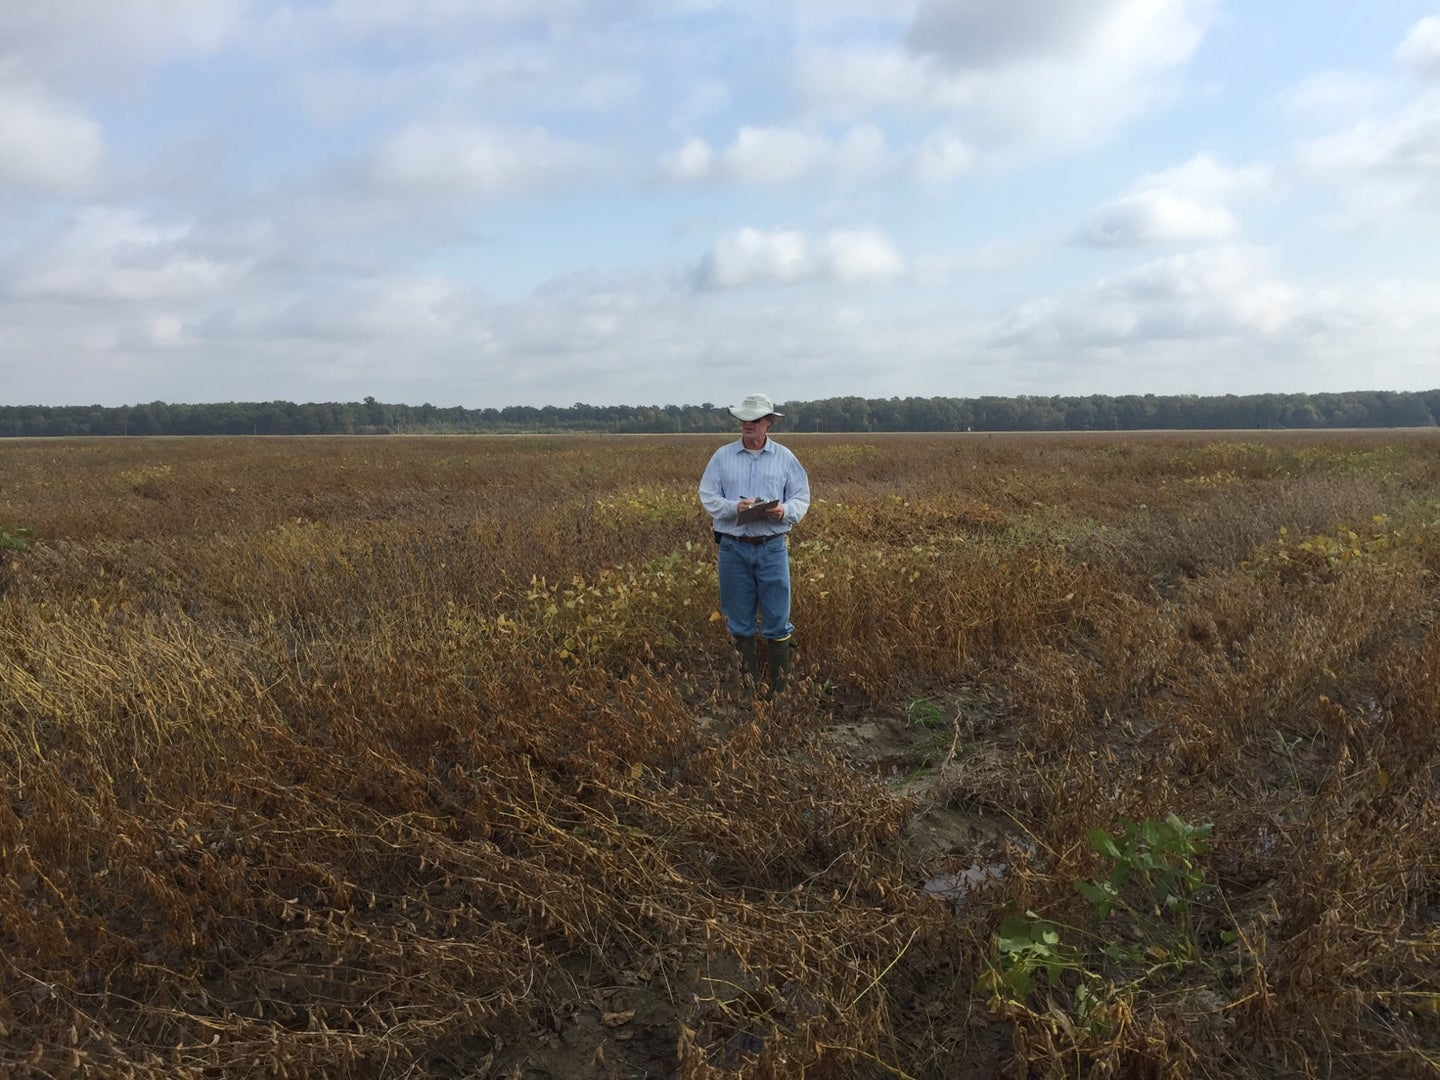 A technician examines wind damage to crops at Pine Tree Research Station, a property the University of Arkansas is trying to sell.